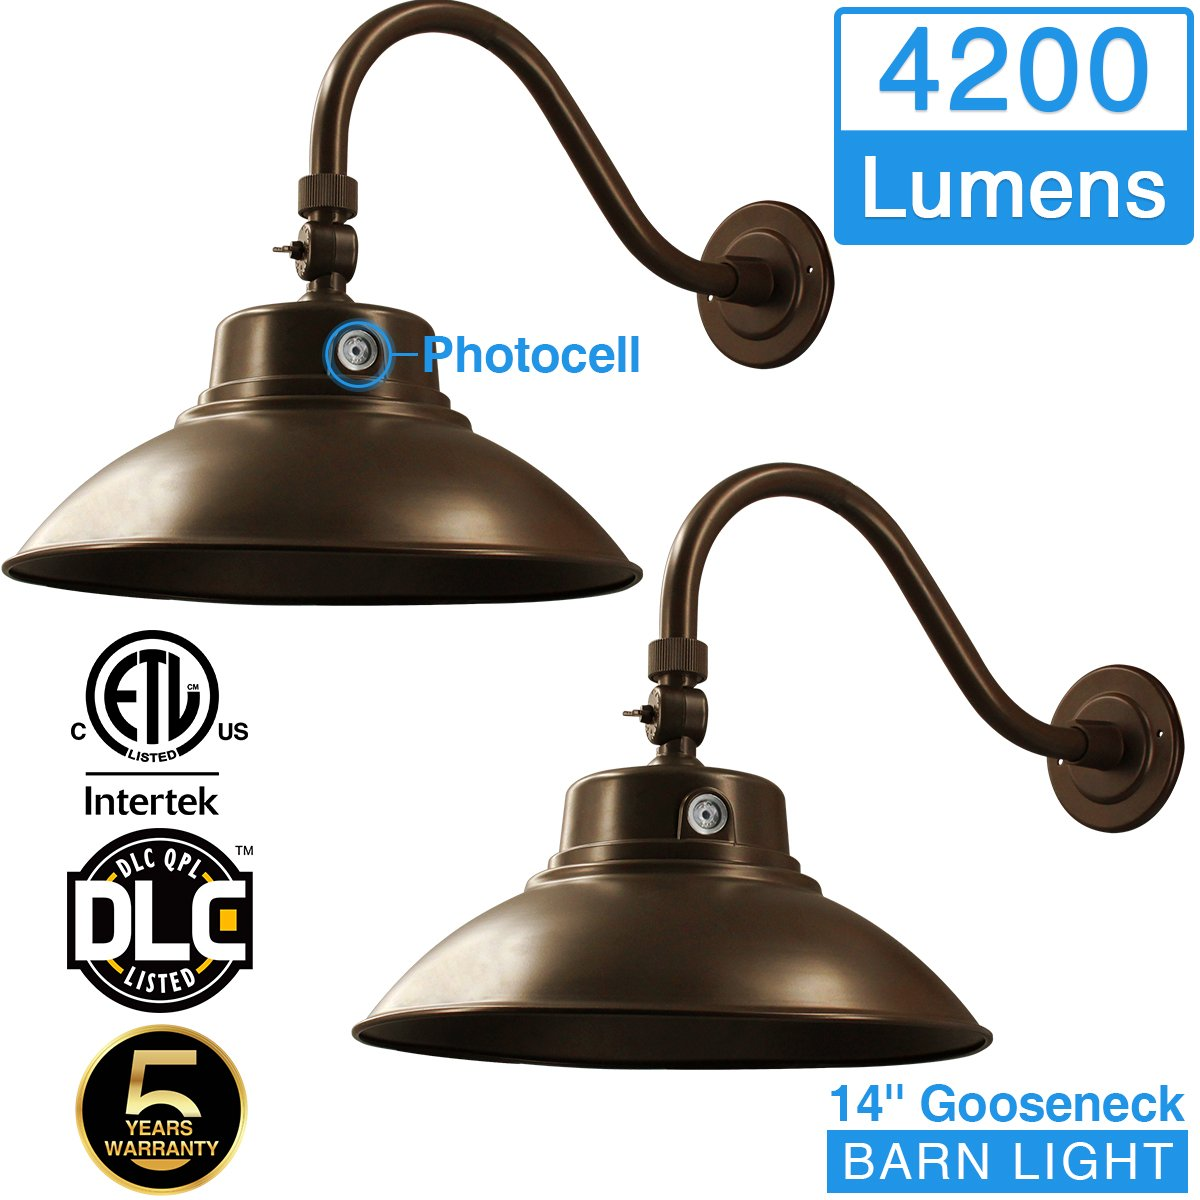 14in. Brown LED Gooseneck Barn Light 42W 4200lm Daylight LED Fixture for Indoor/Outdoor Use - Photocell Included - Swivel Head,Energy Star Rated - ETL Listed - Sign Lighting - 5000K Daylight 2pk